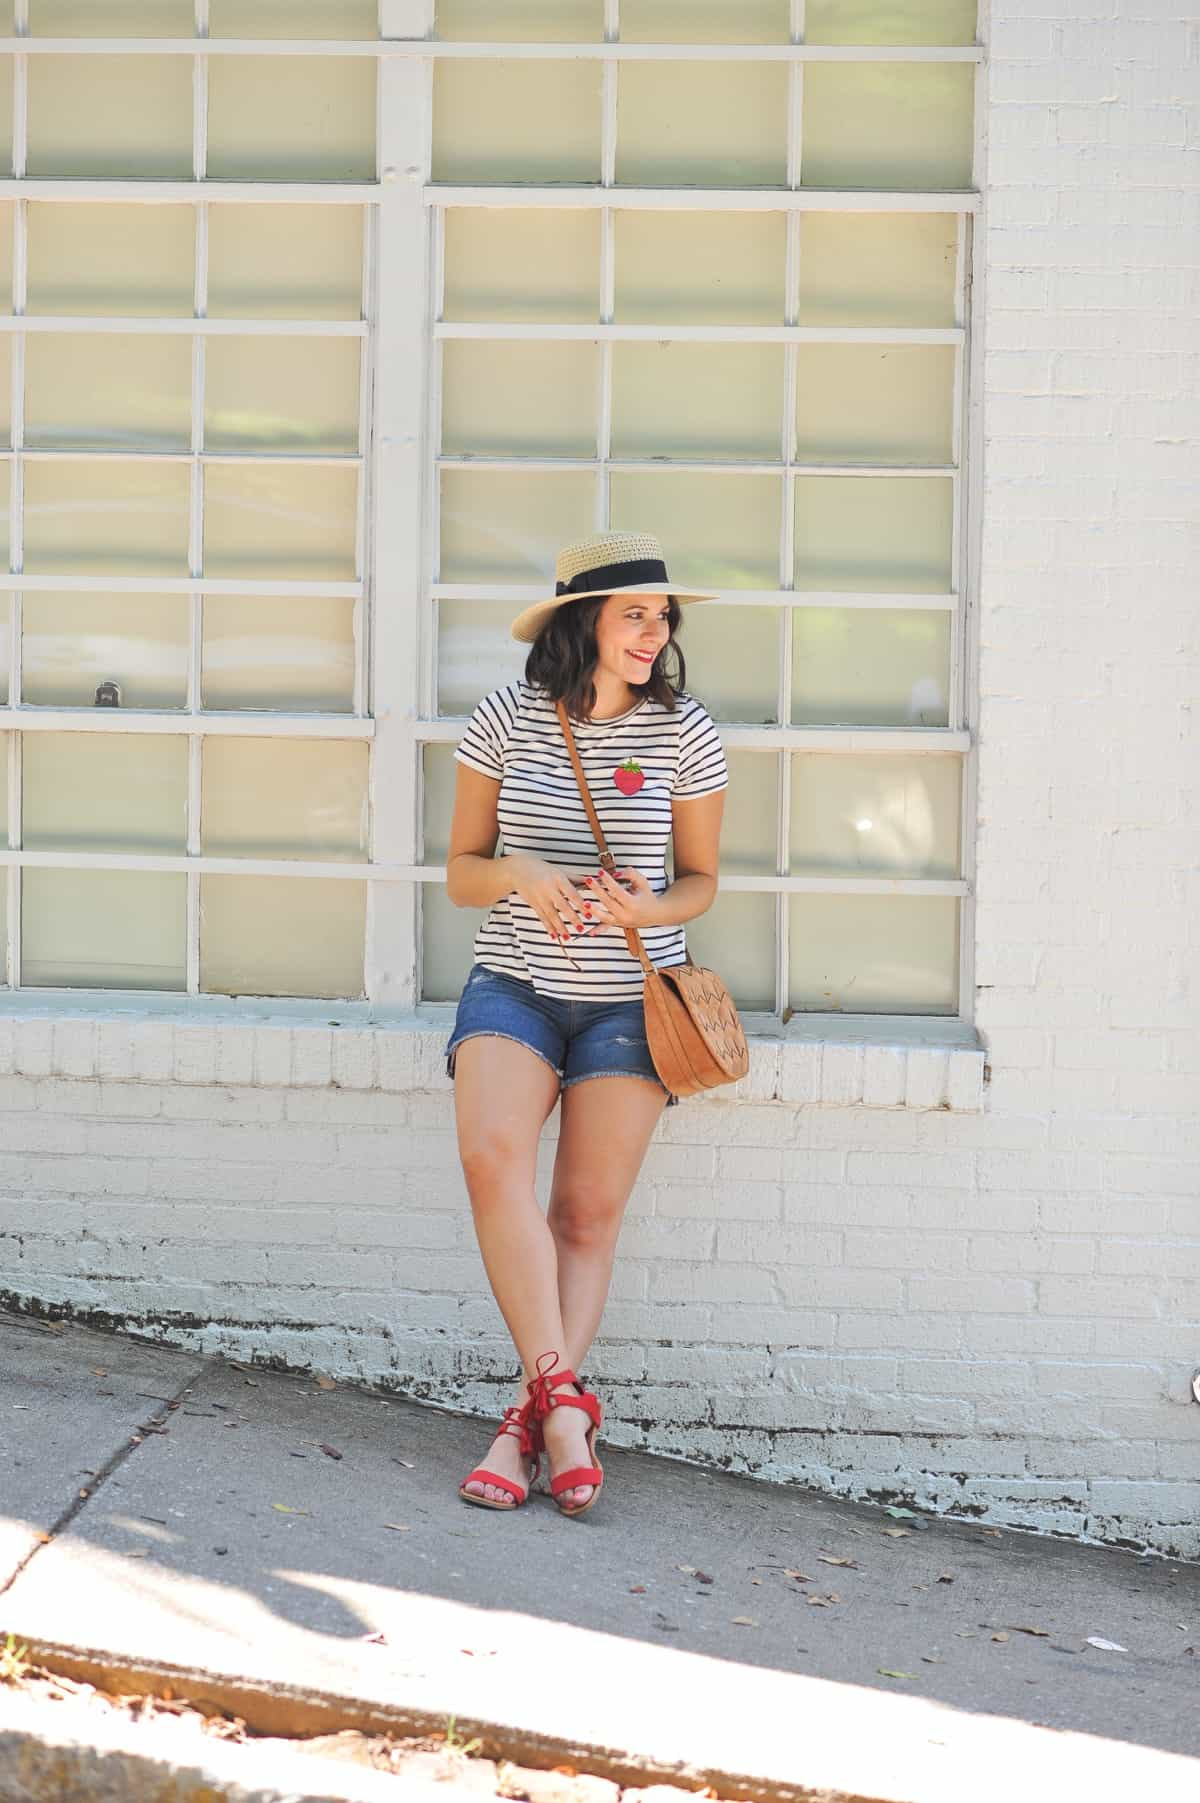 4th of july outfit ideas, striped tee outfits - @mystylevita - 5